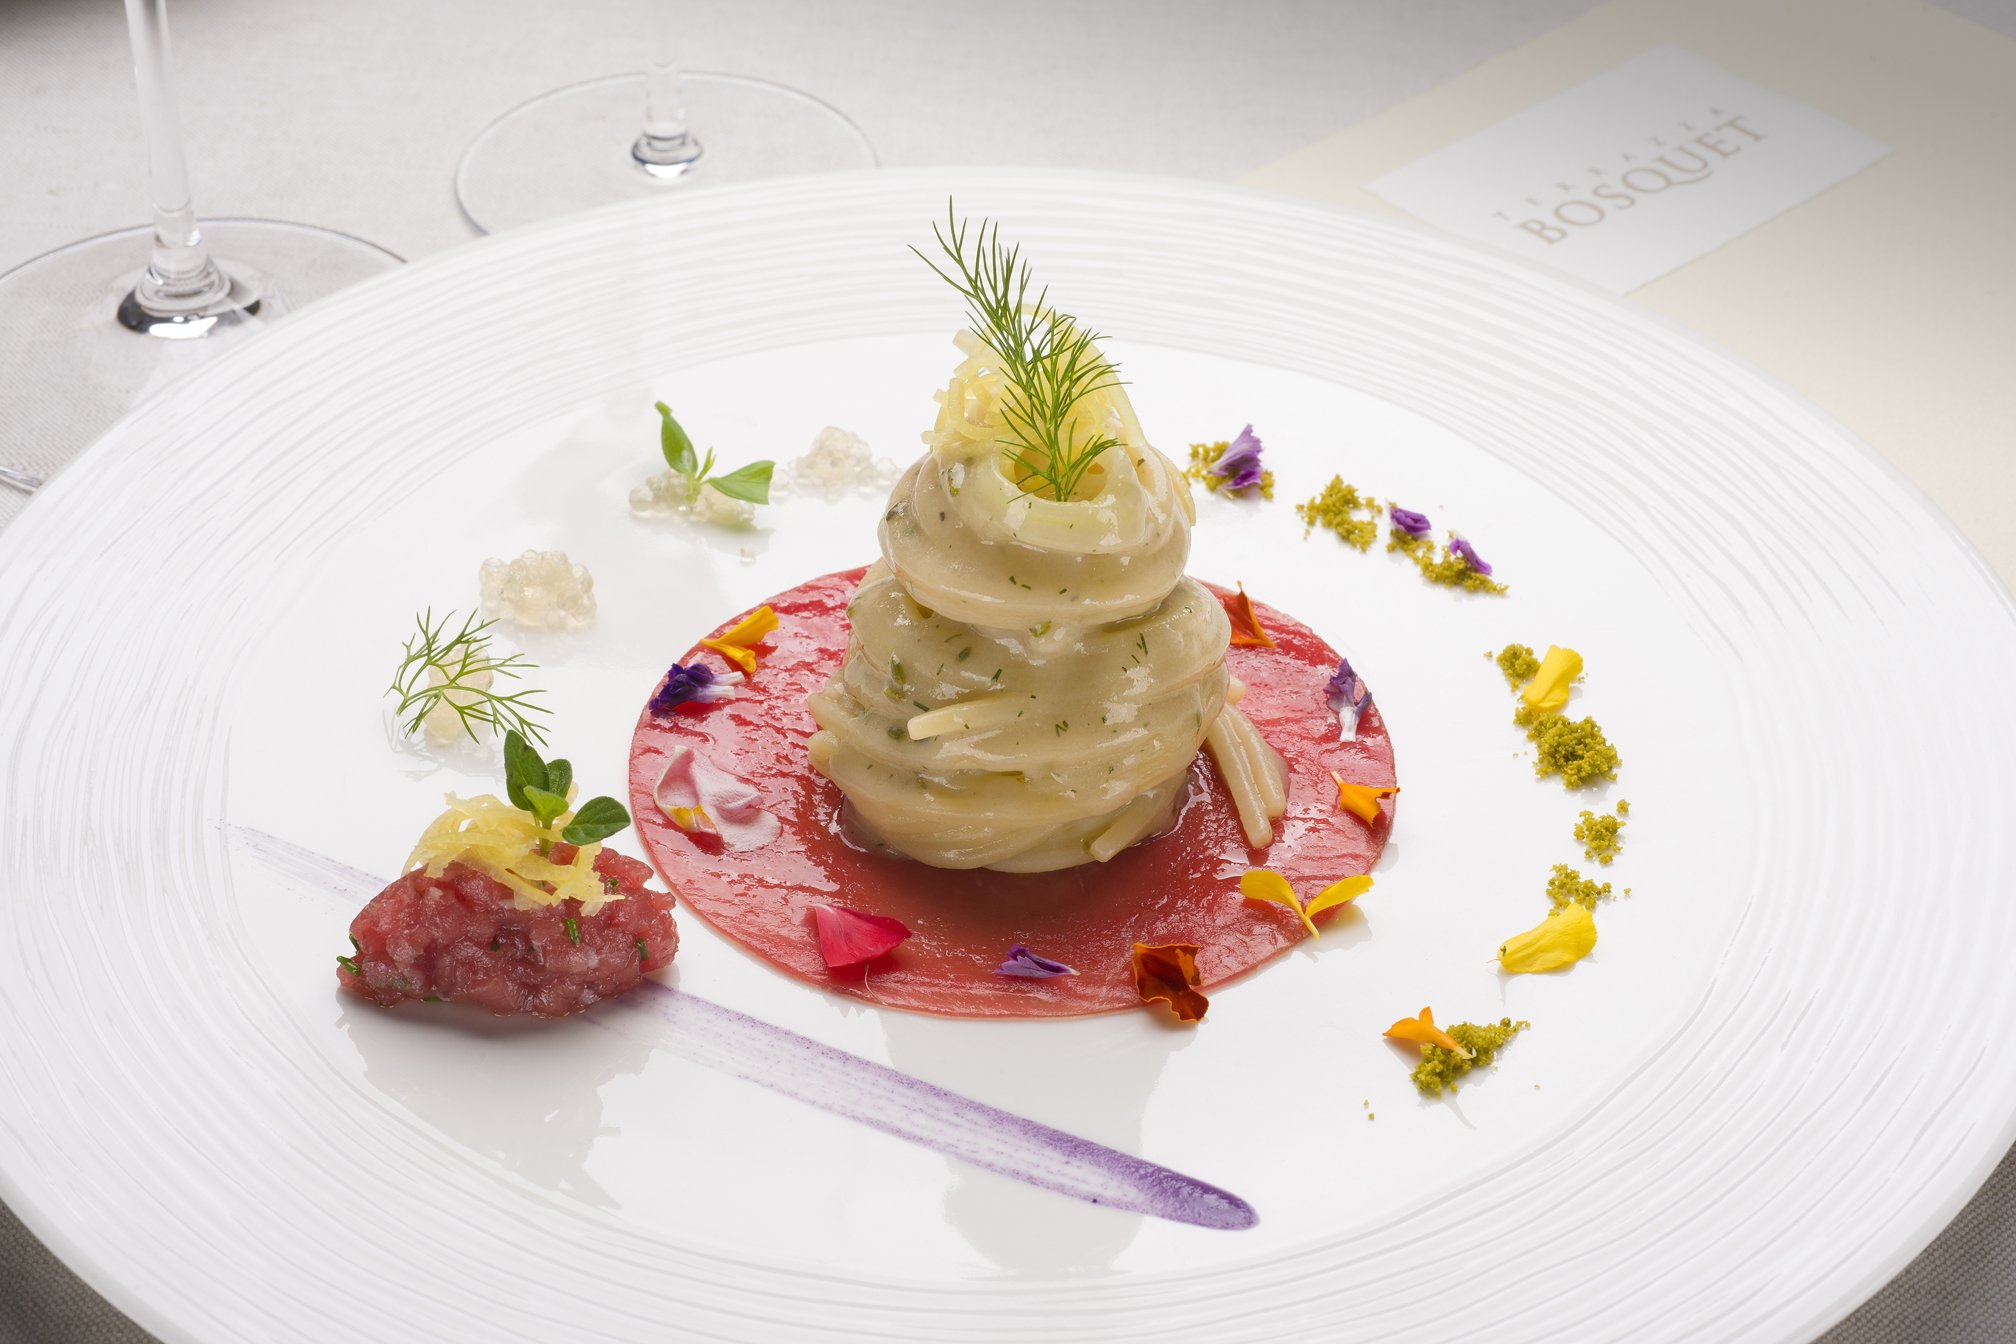 Grand Hotel Excelsior Vittoria on Twitter Our Michelin starred gourmet restaurant Terrazza